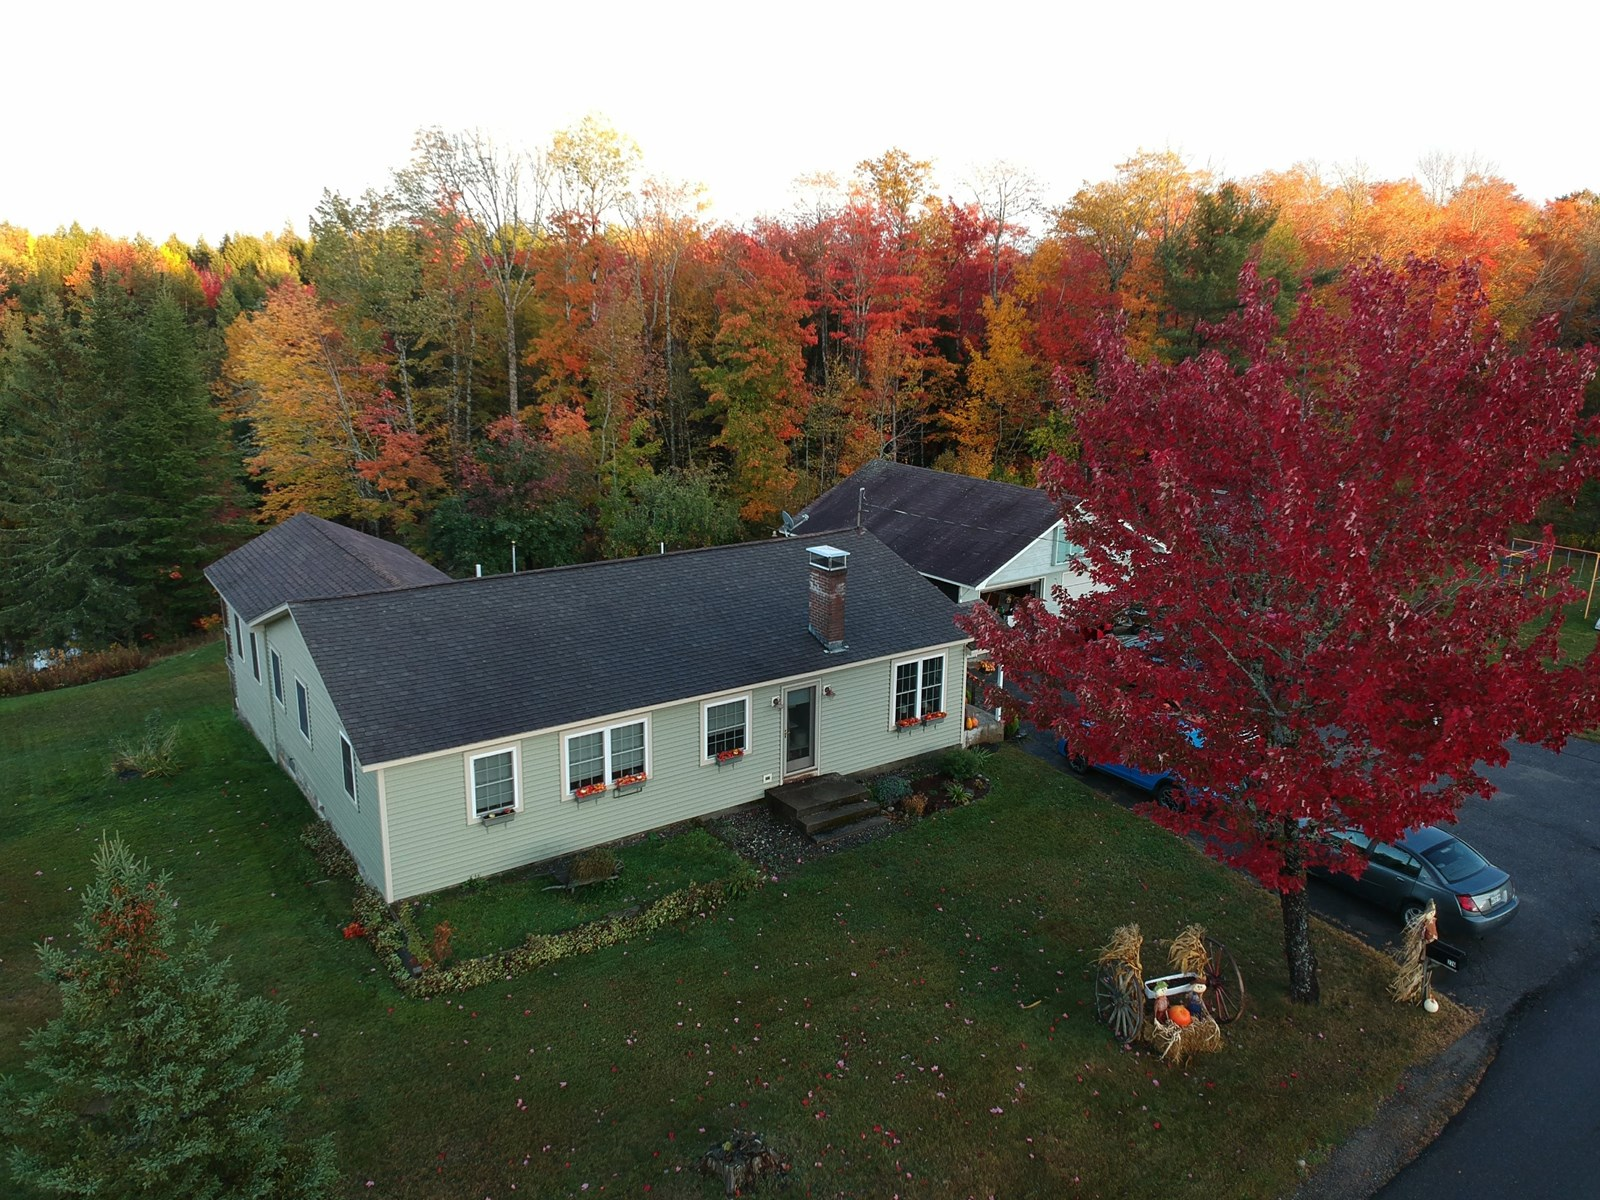 Ranch Style Country Home for Sale in Winn, ME